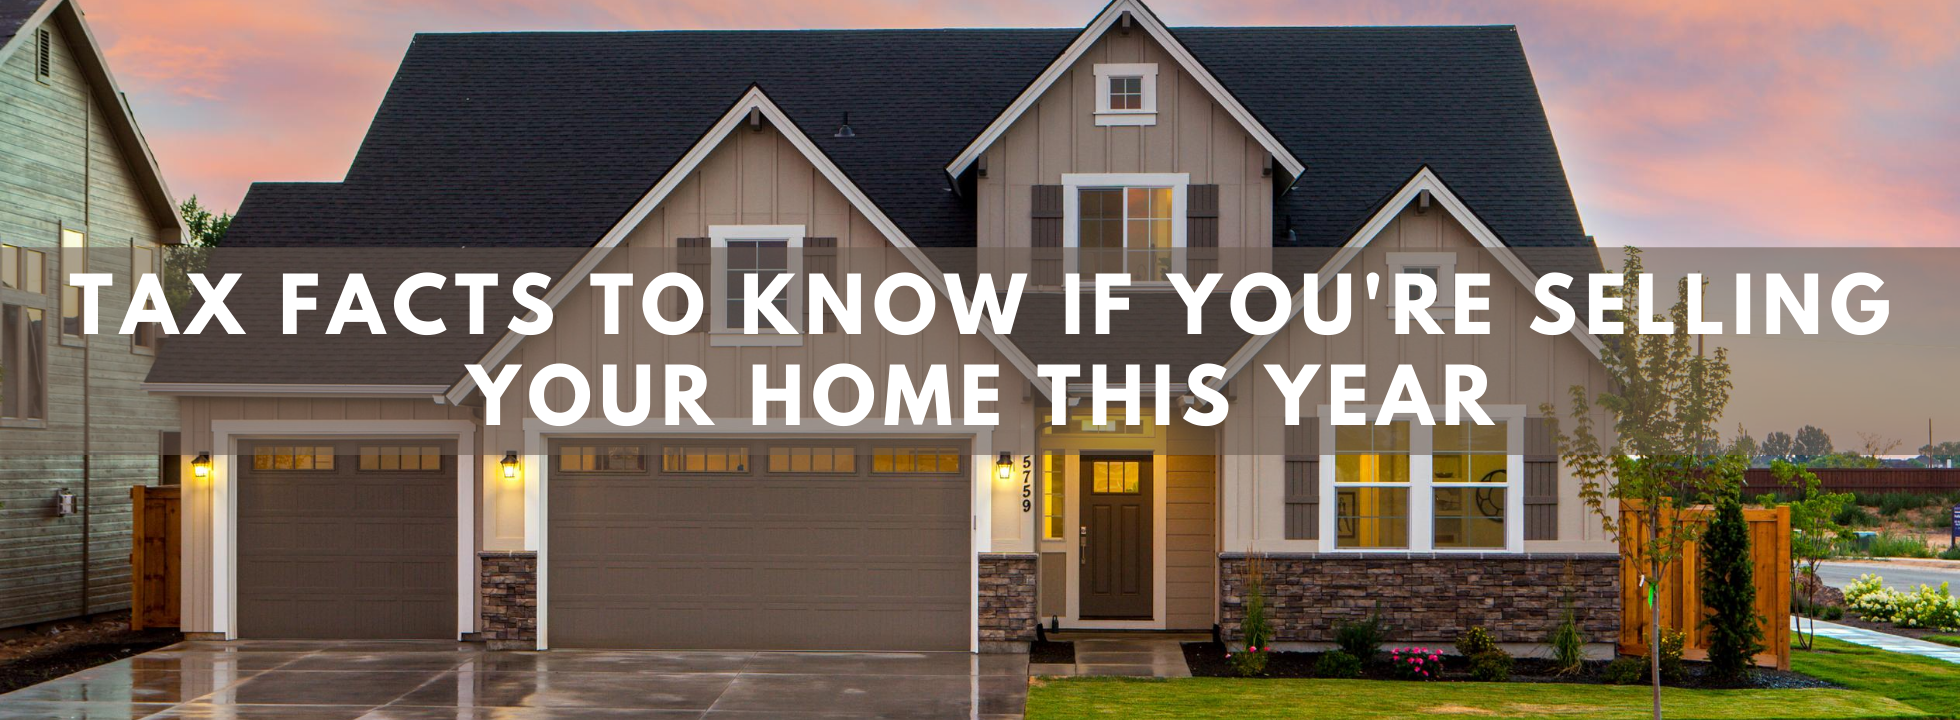 Tax Facts to Know If youre Selling Your Home This Year